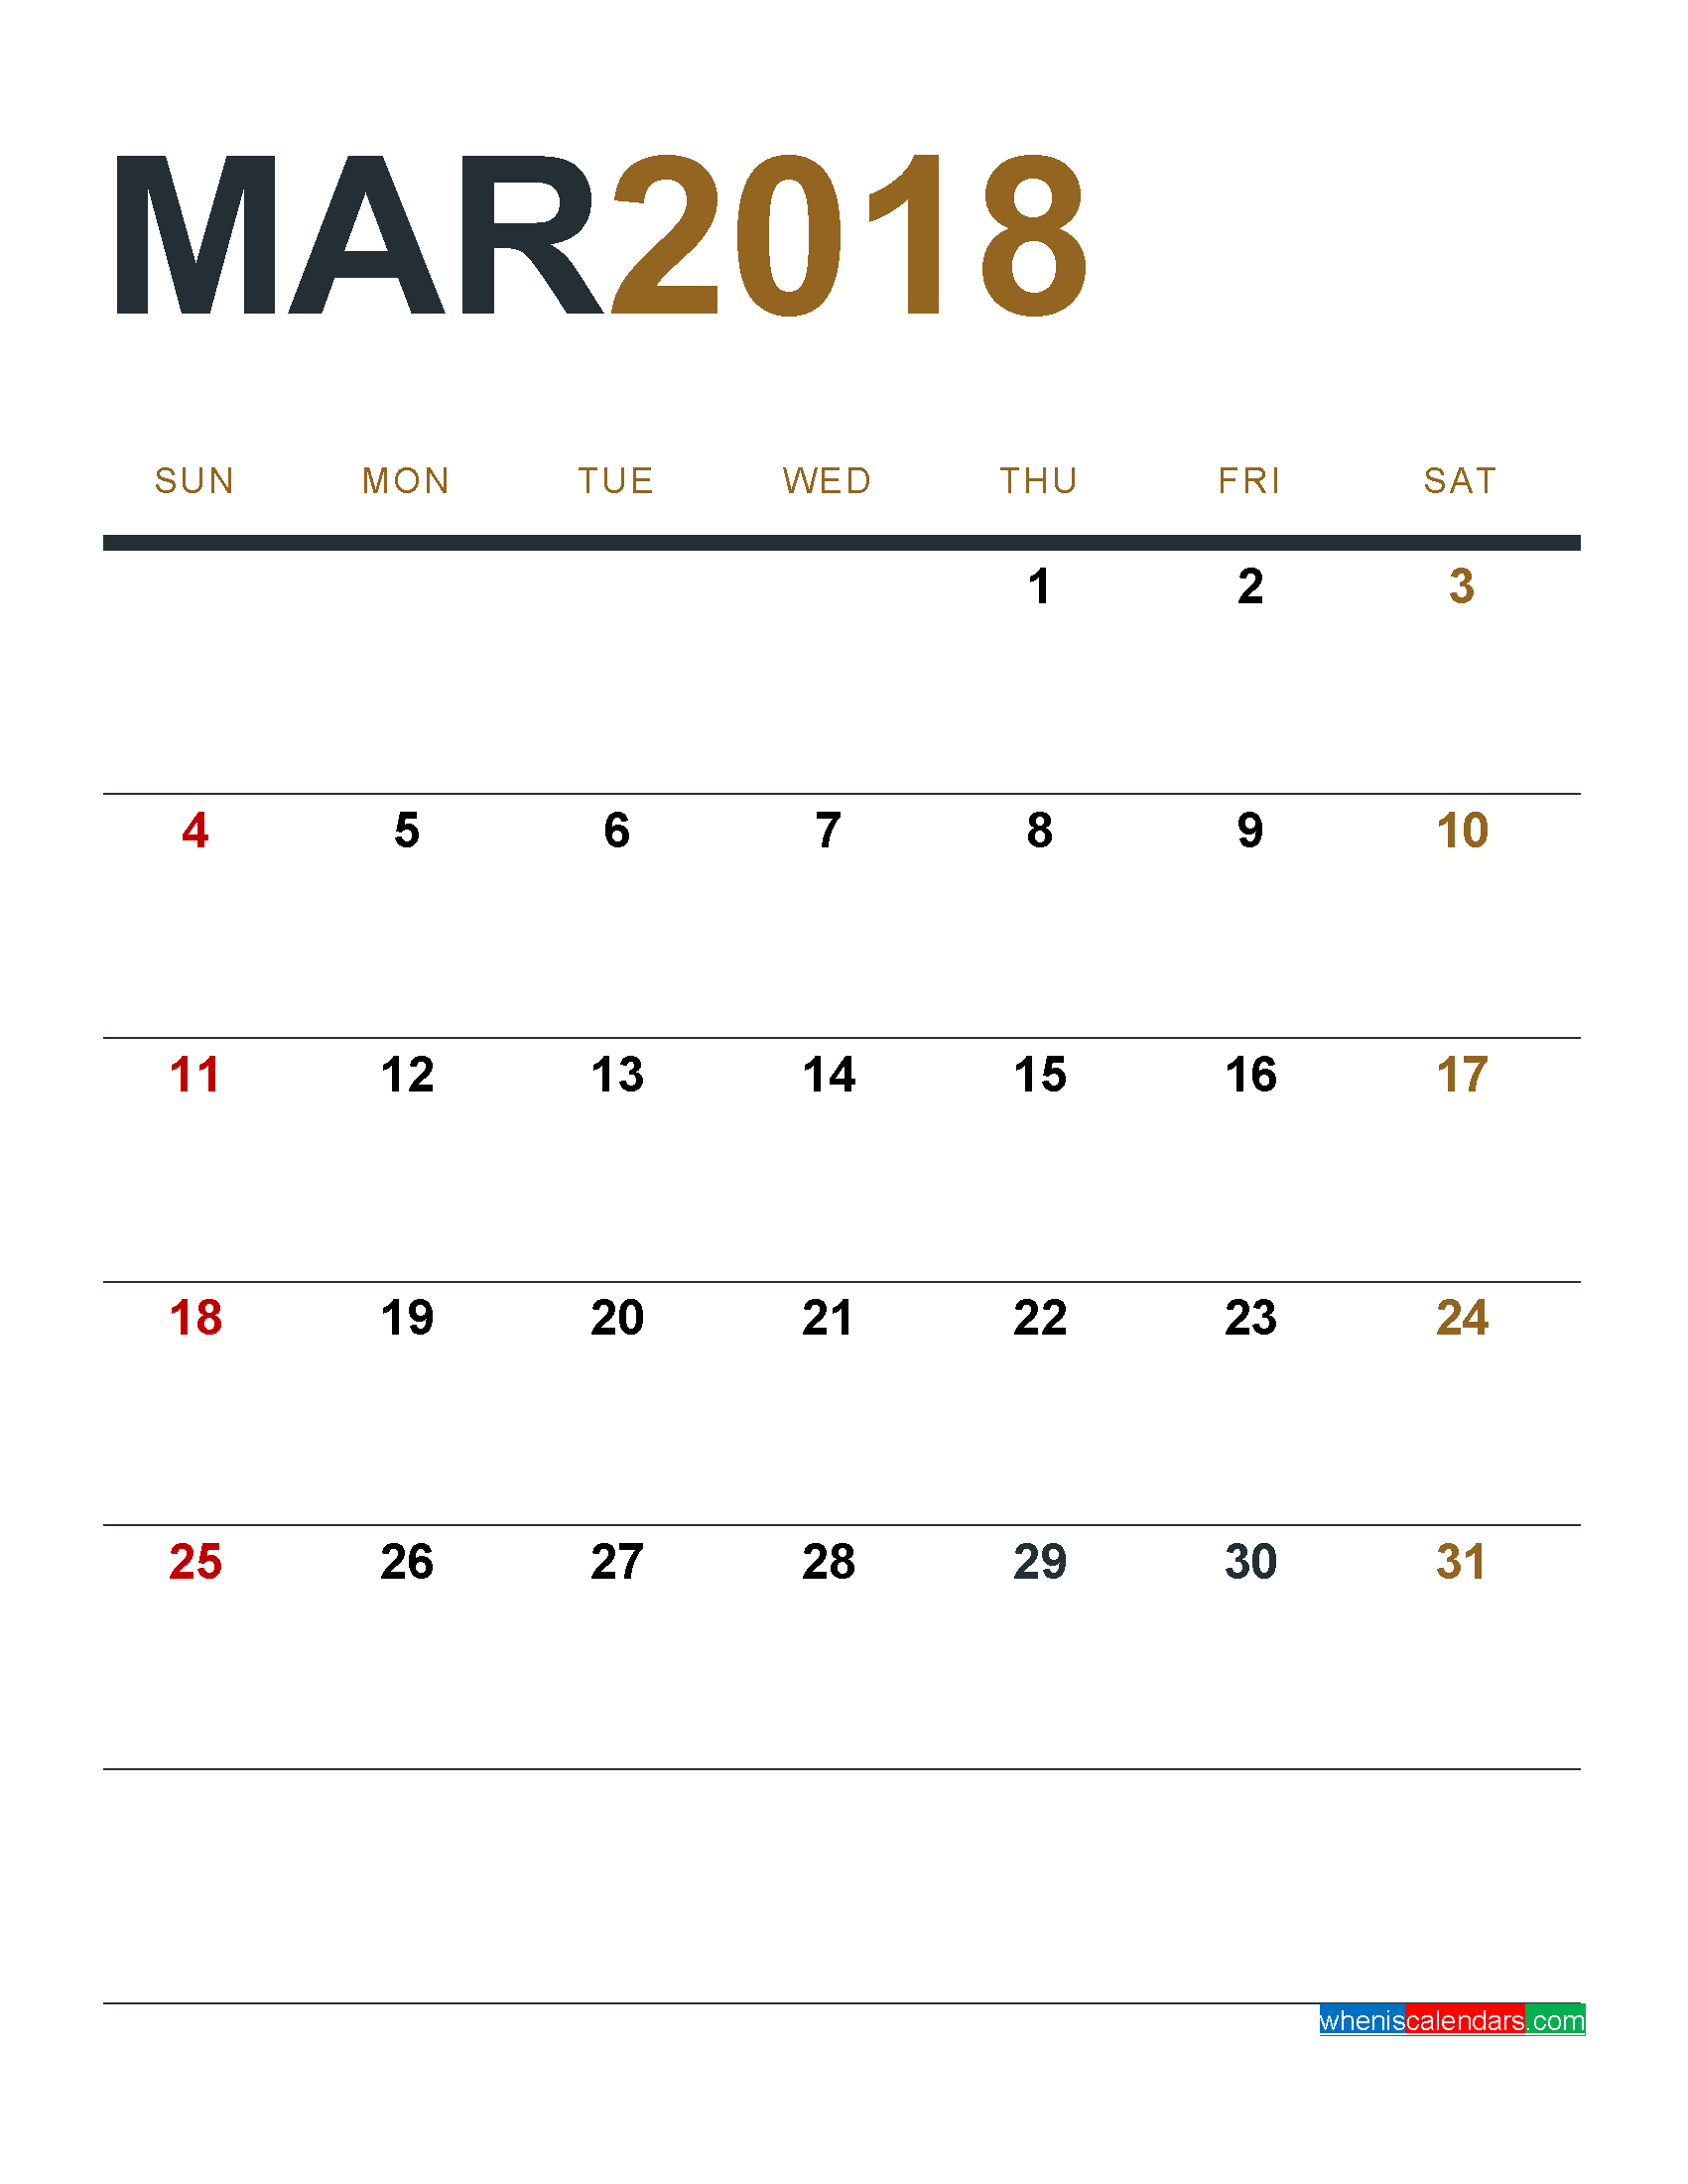 March 2018 Calendar Printable As Pdf And Image 1 Month 1